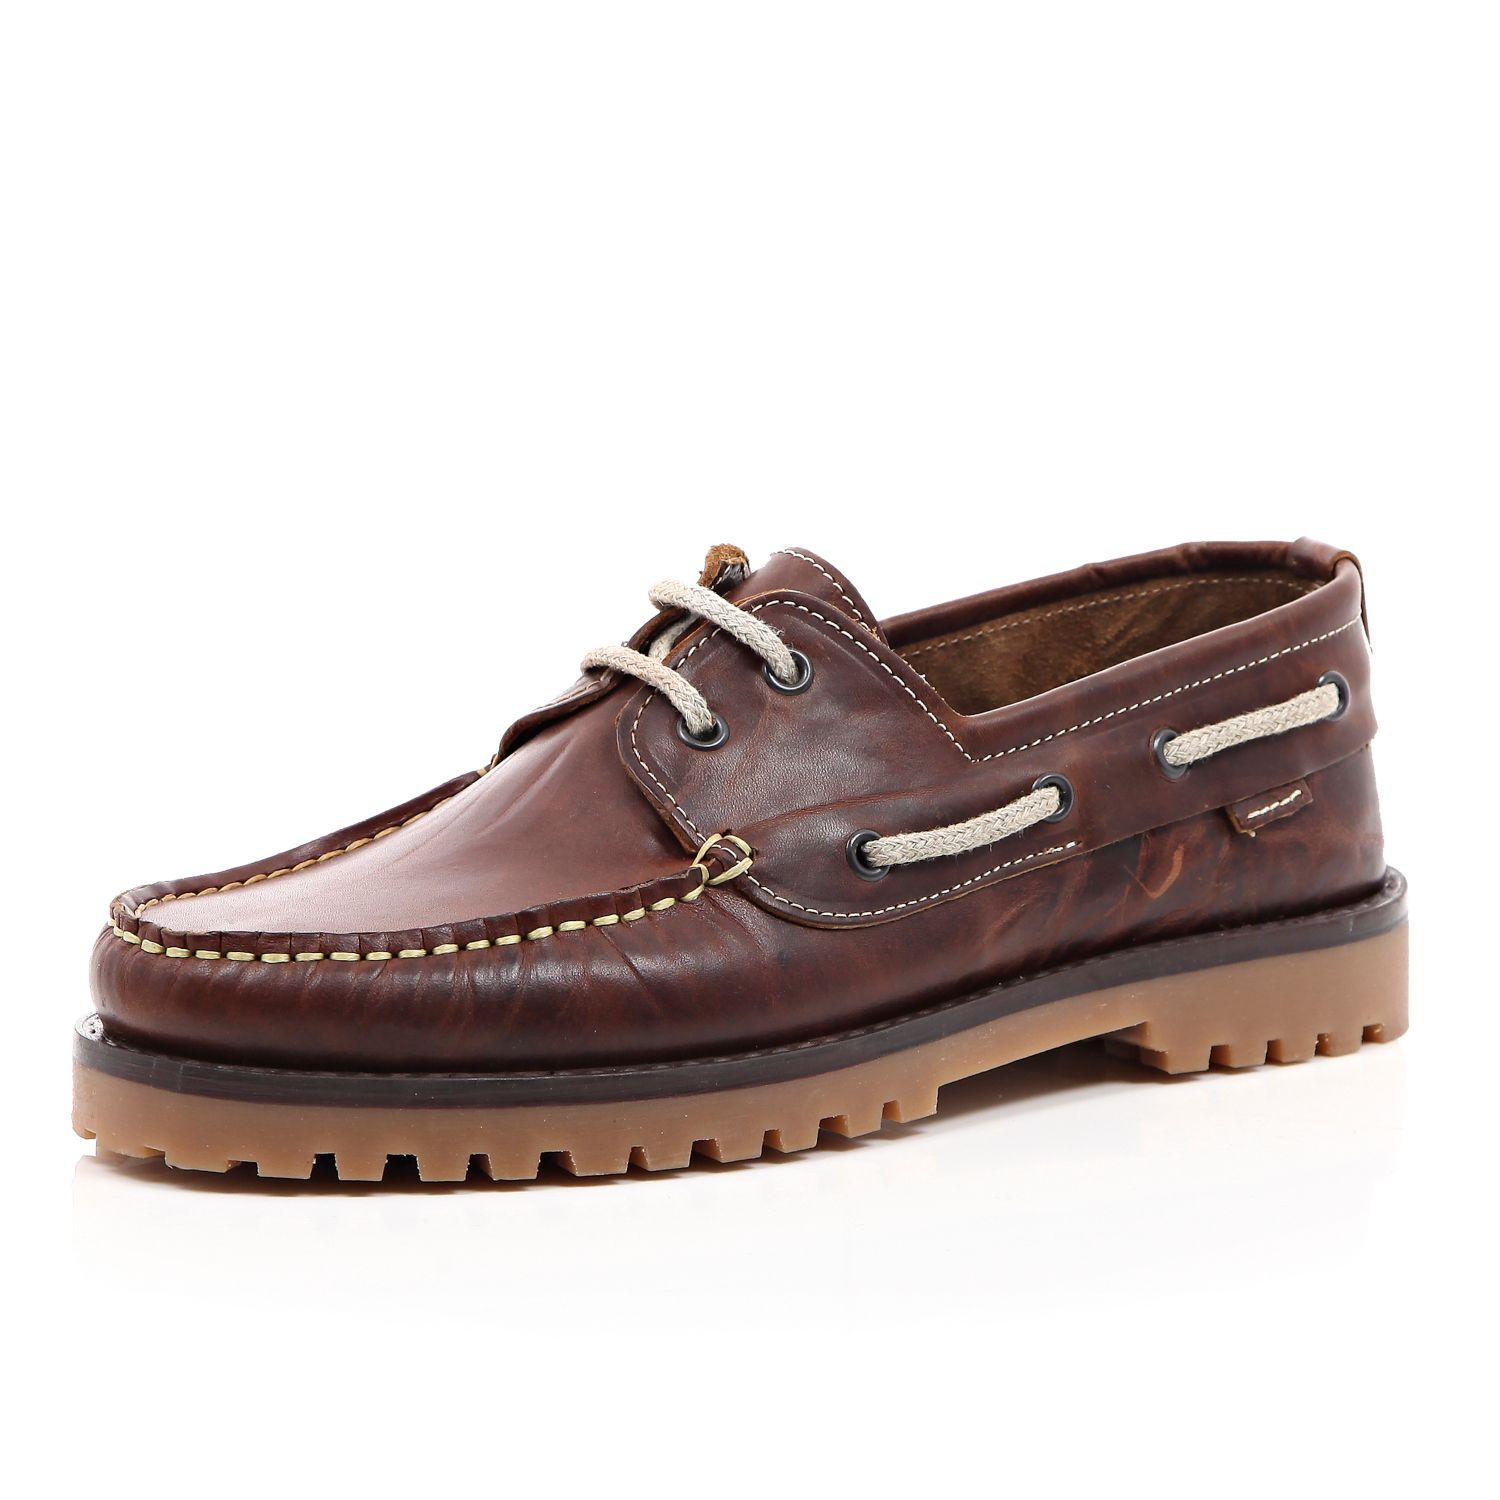 river island brown leather cleated sole boat shoes in